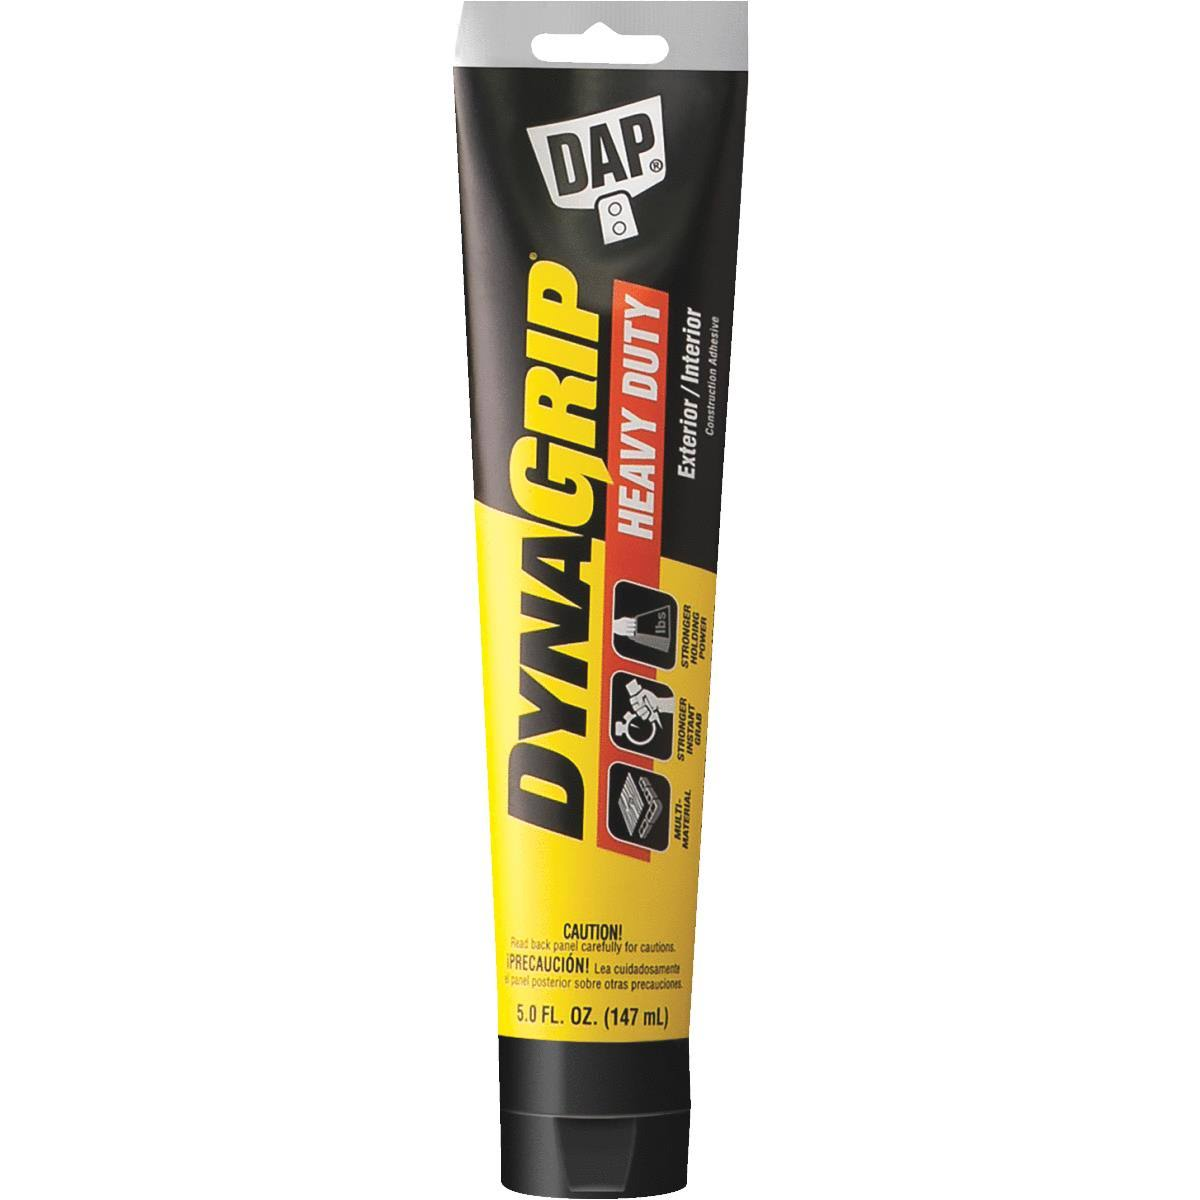 Dap Dynagrip Heavy Duty Construction Adhesive - 5oz